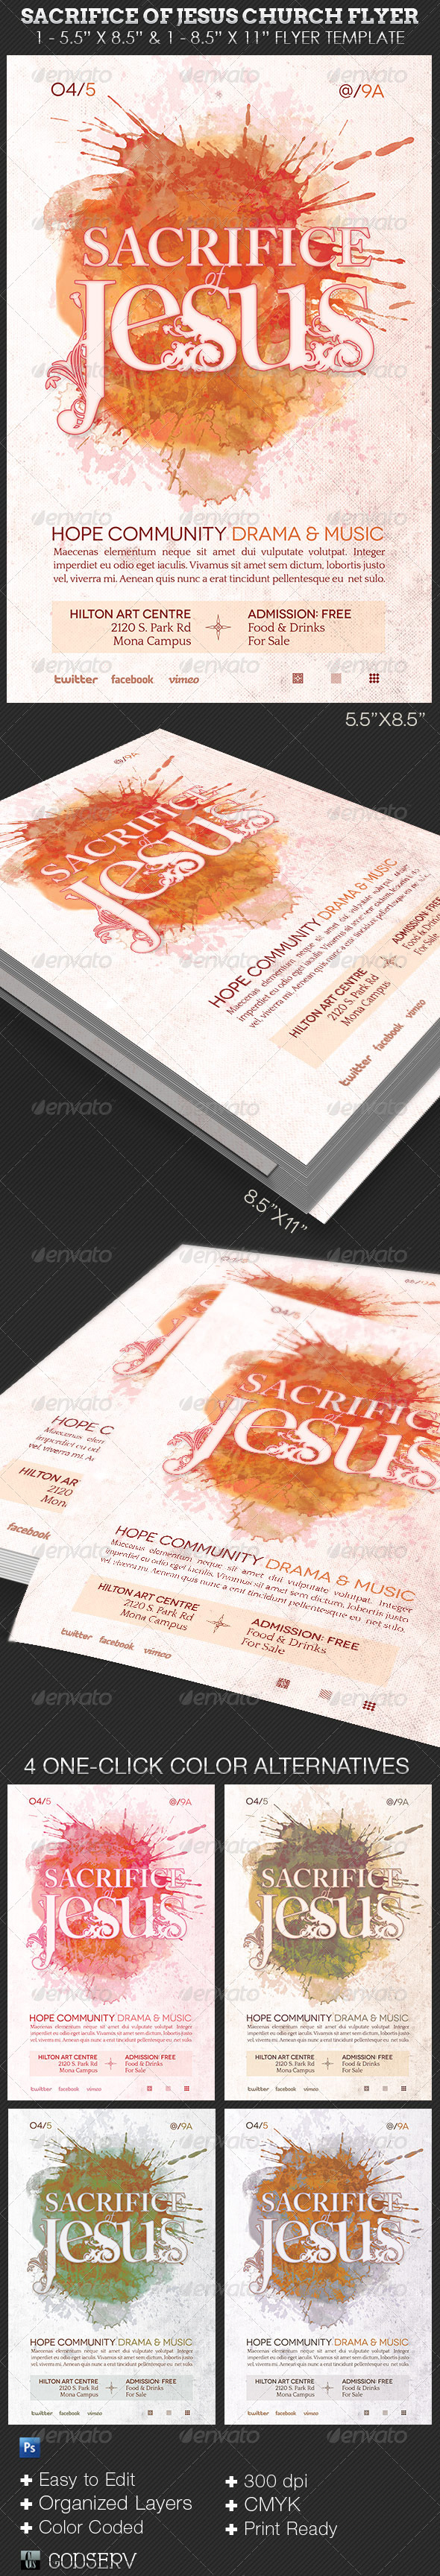 GraphicRiver Sacrifice of Jesus Church Flyer Template 6784111